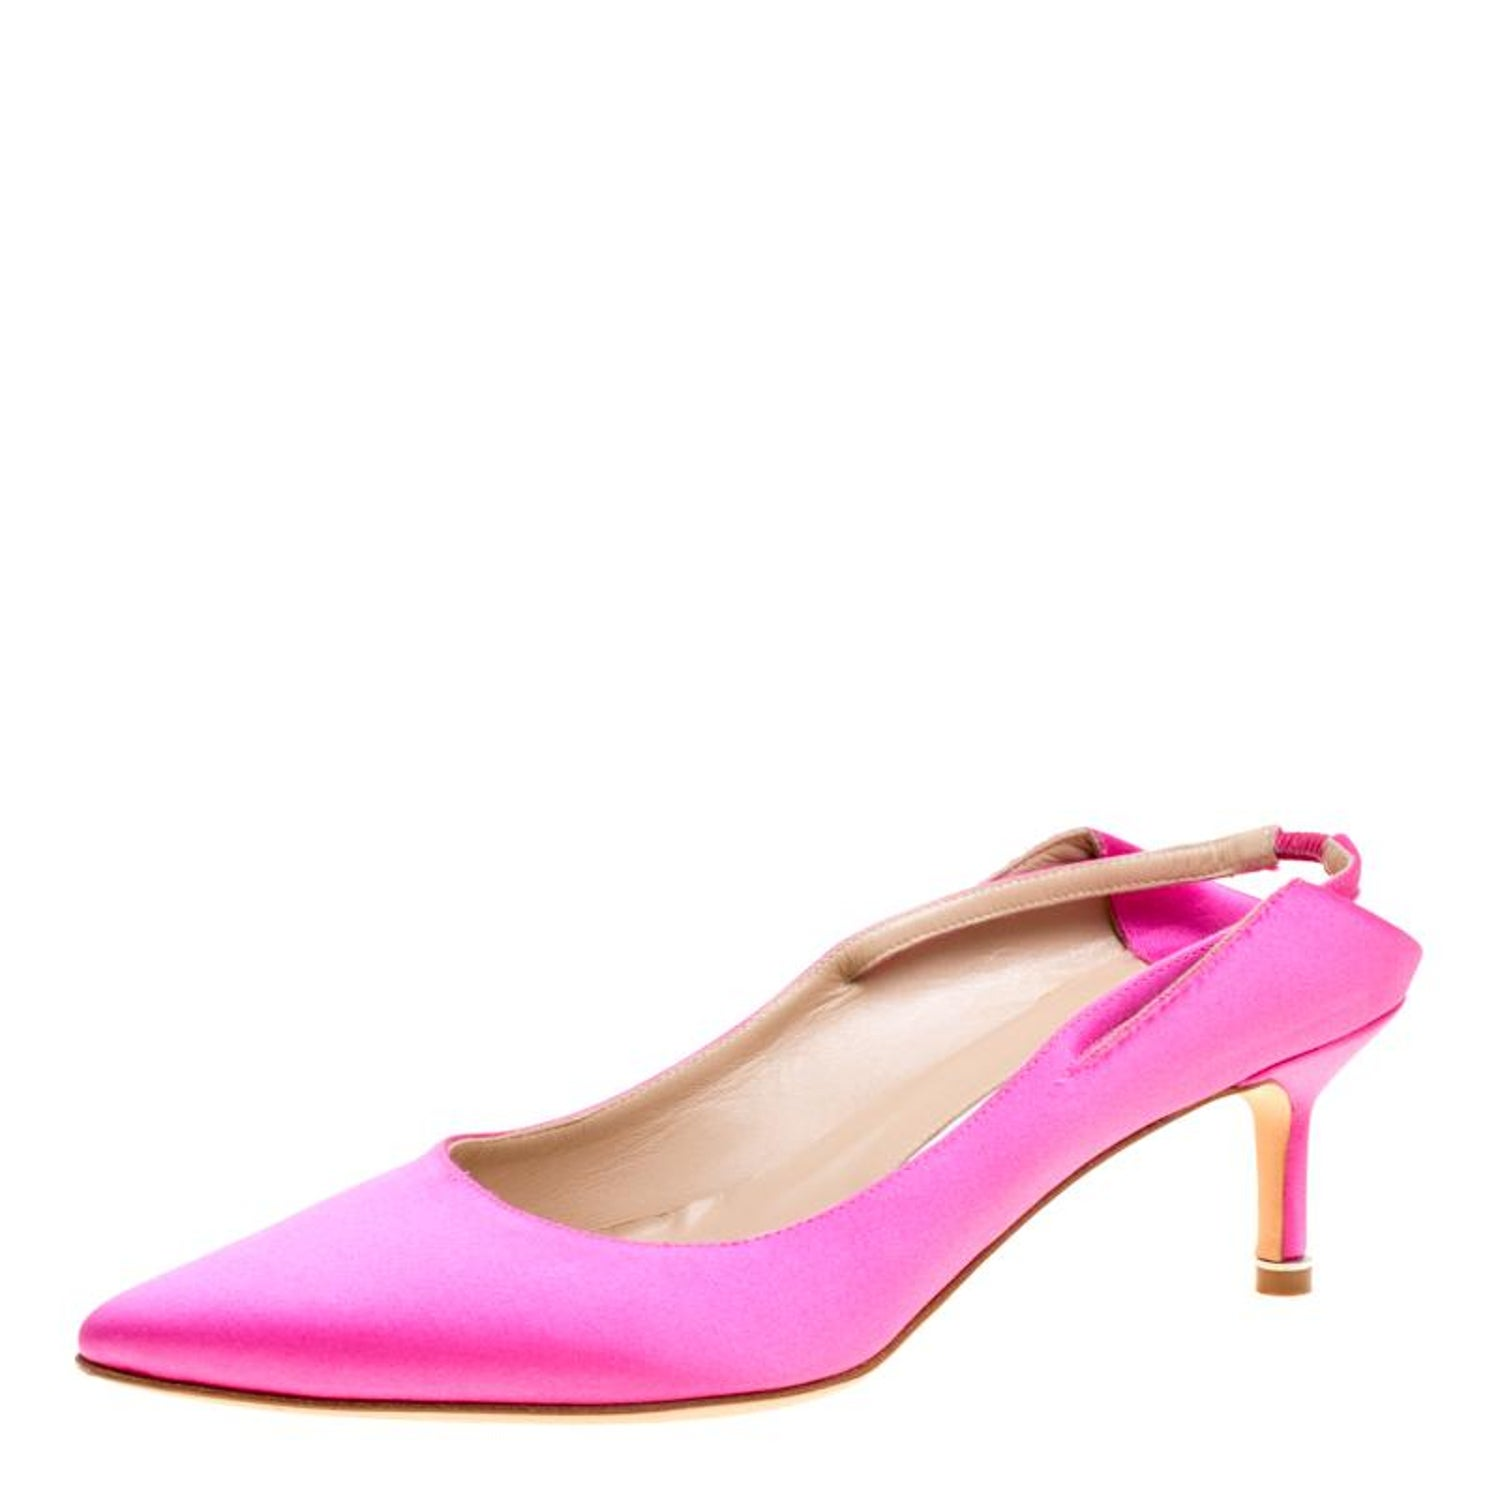 afad6e6ec8f25 Vetements + Manolo Blahnik Pink Satin Pointed Toe Slingback Sandals Size 39  For Sale at 1stdibs